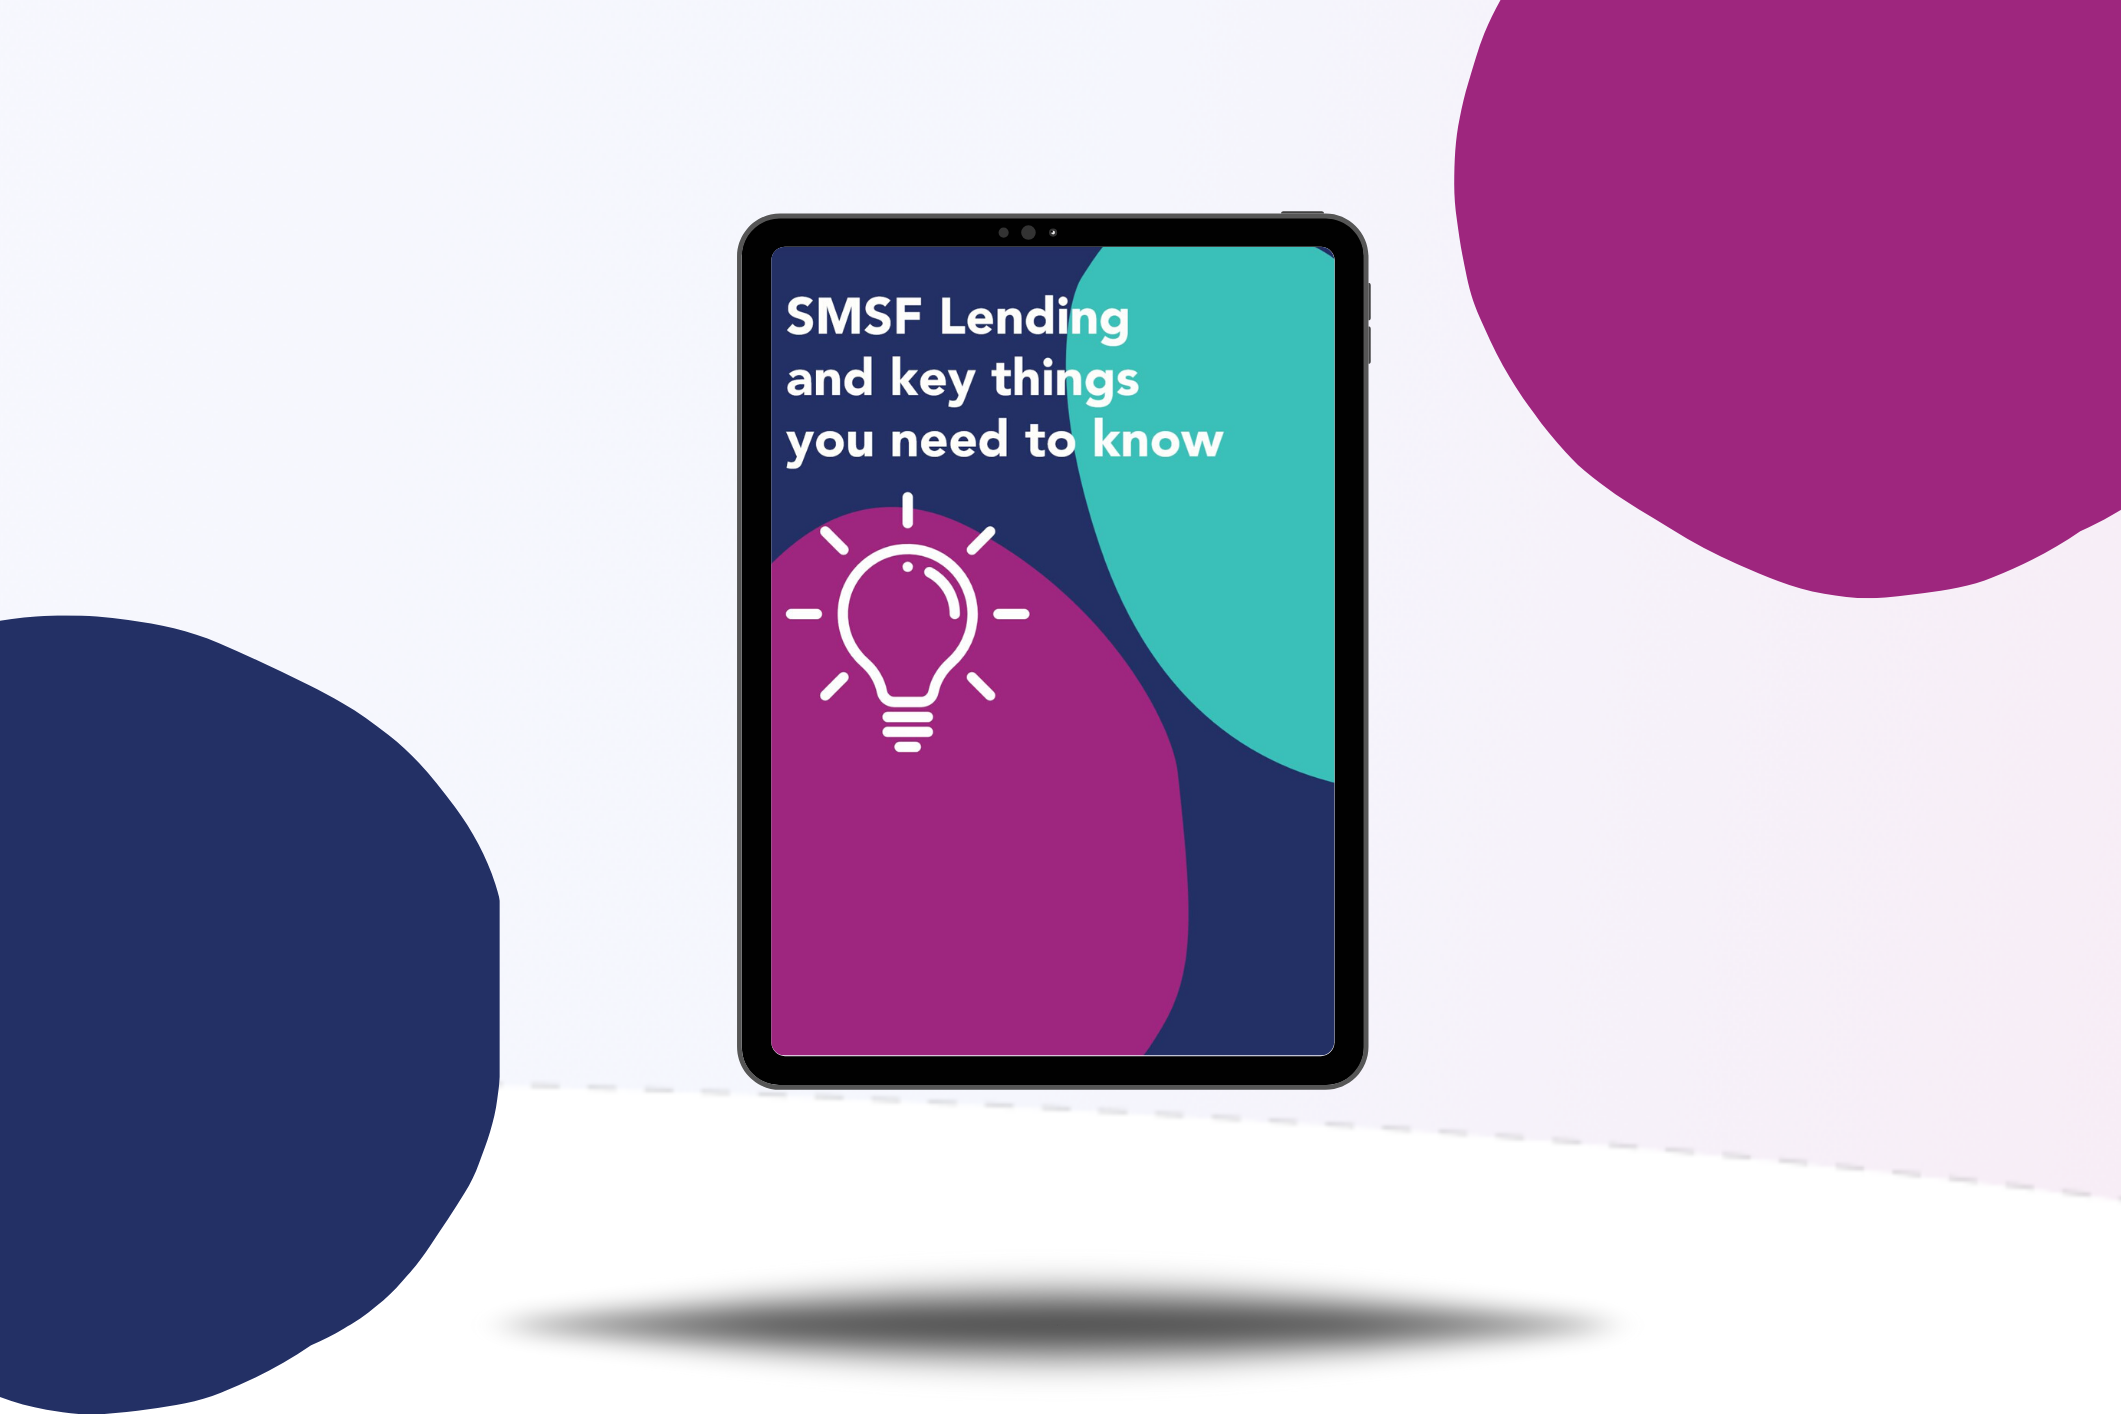 SMSF Lending and key things you need to know Image